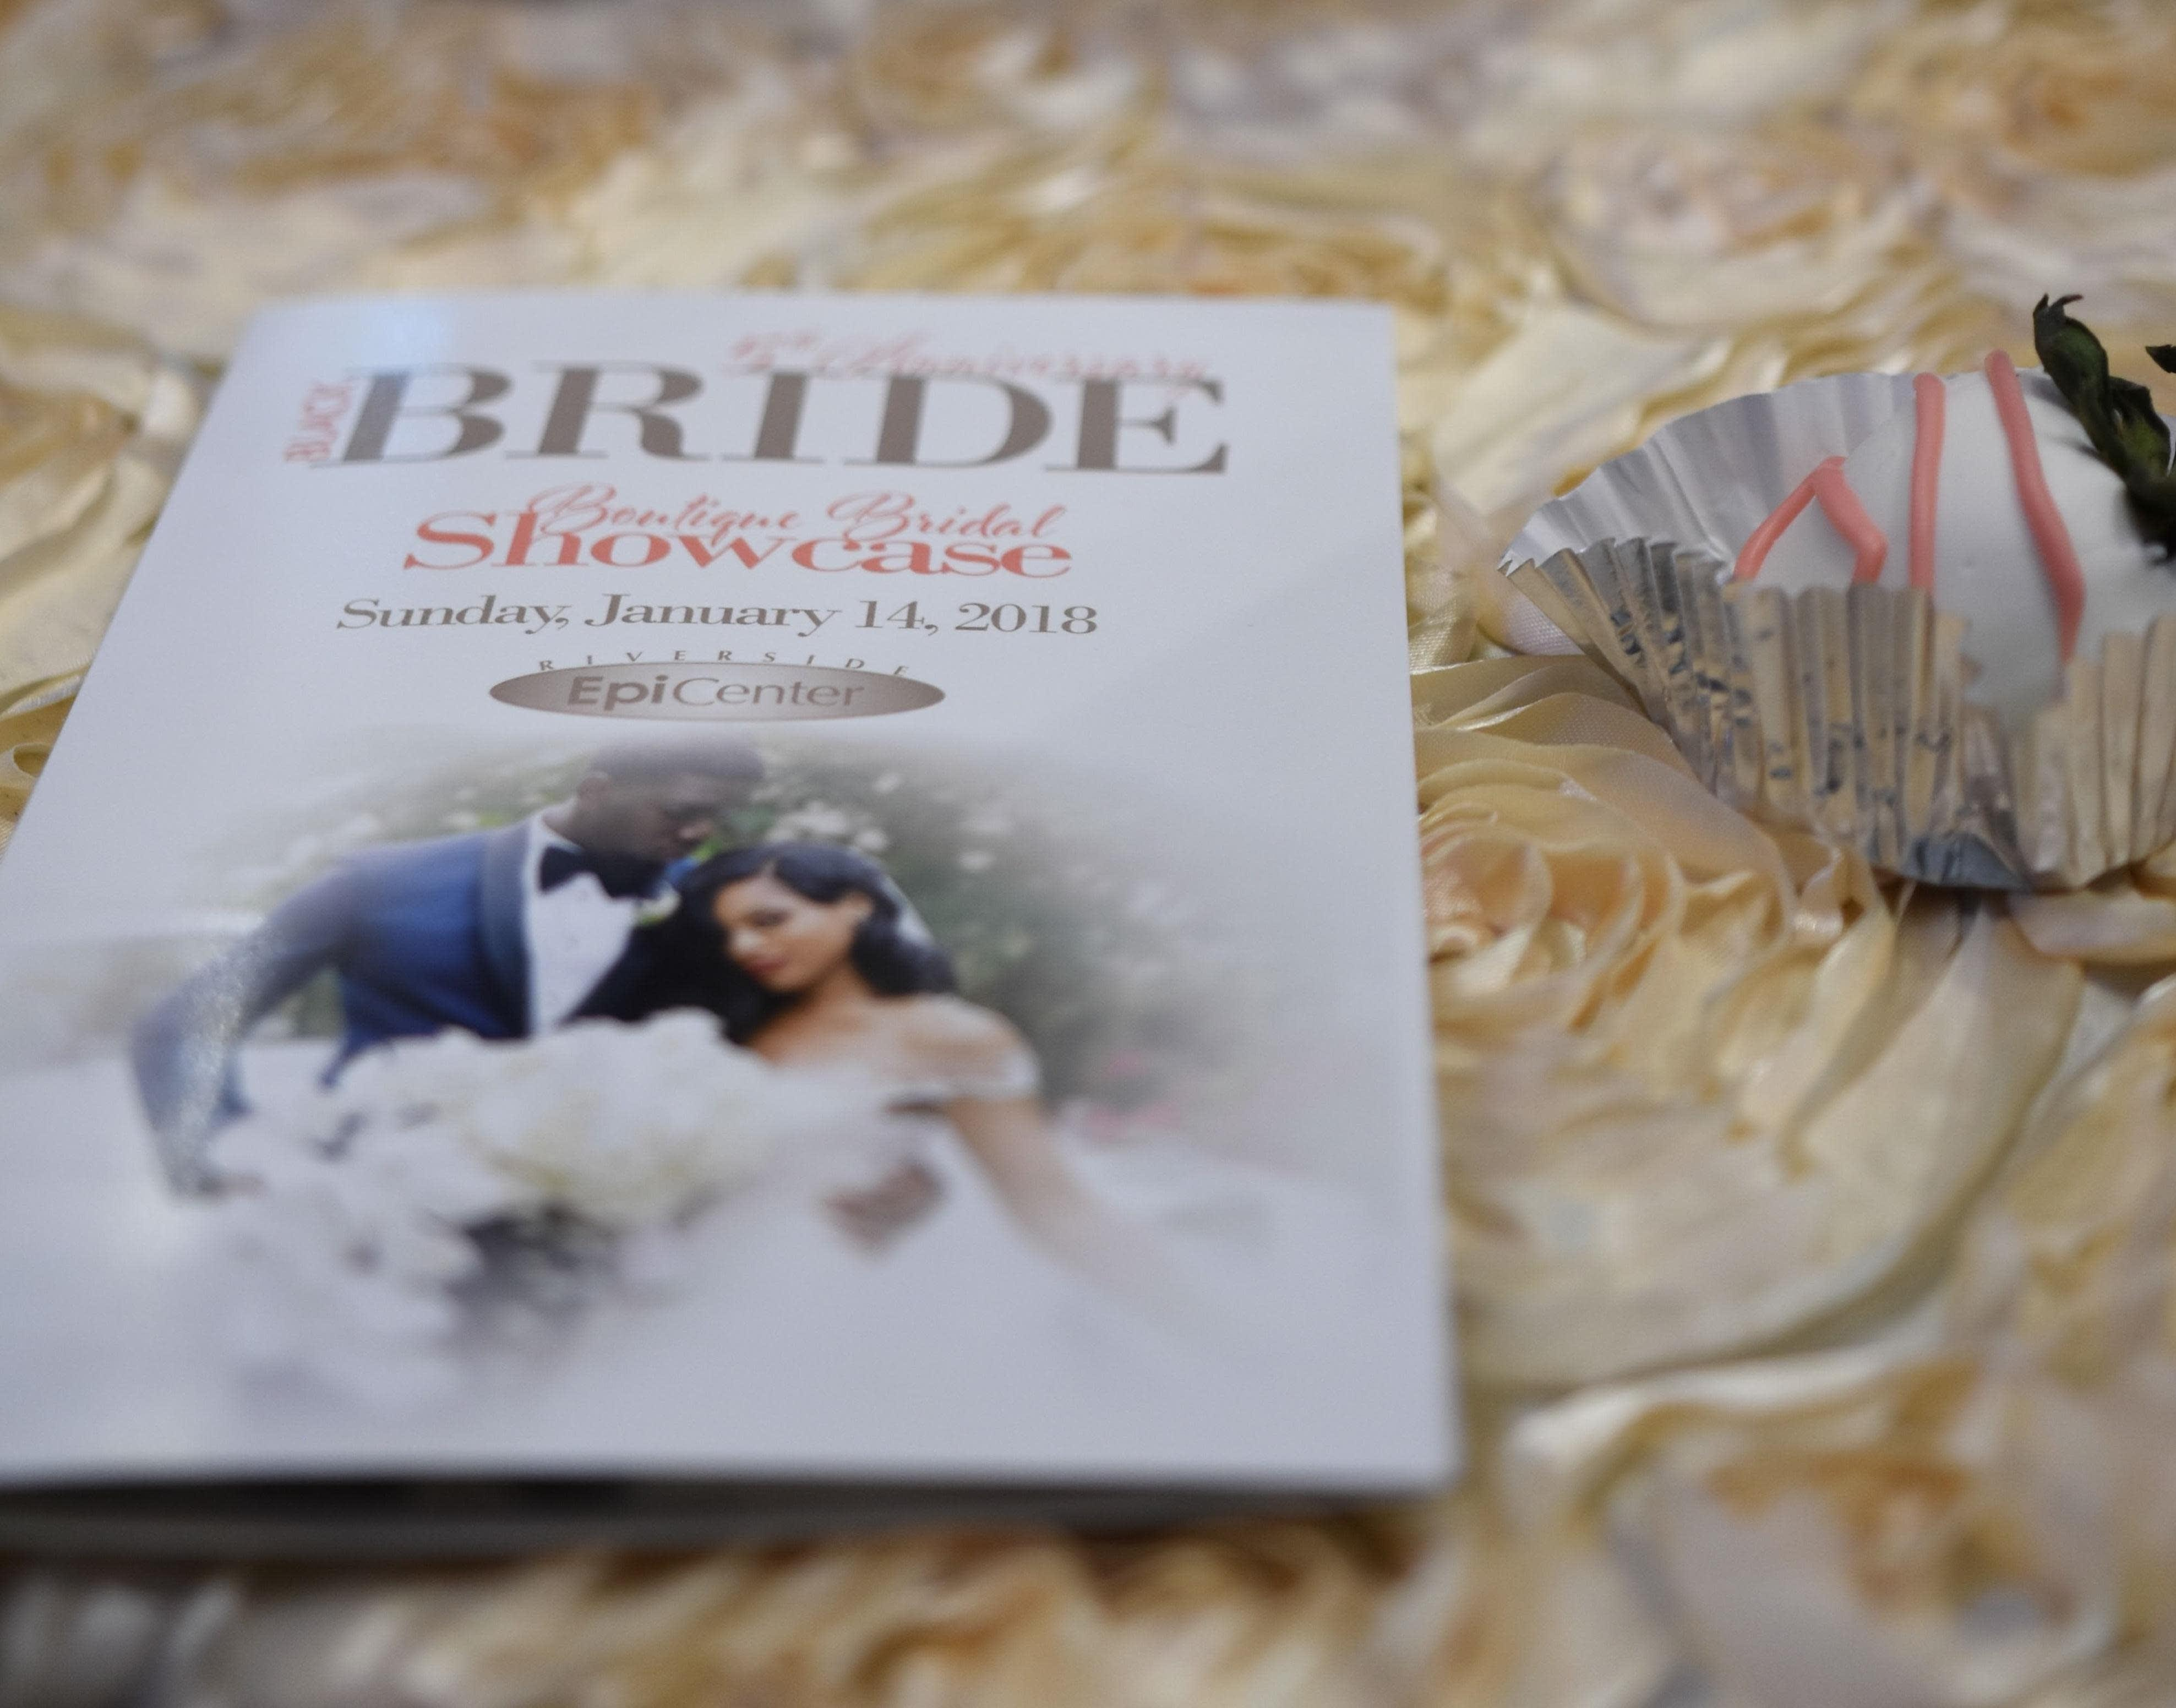 <h1>One Common Thread: The Excellent Marriage</h1>